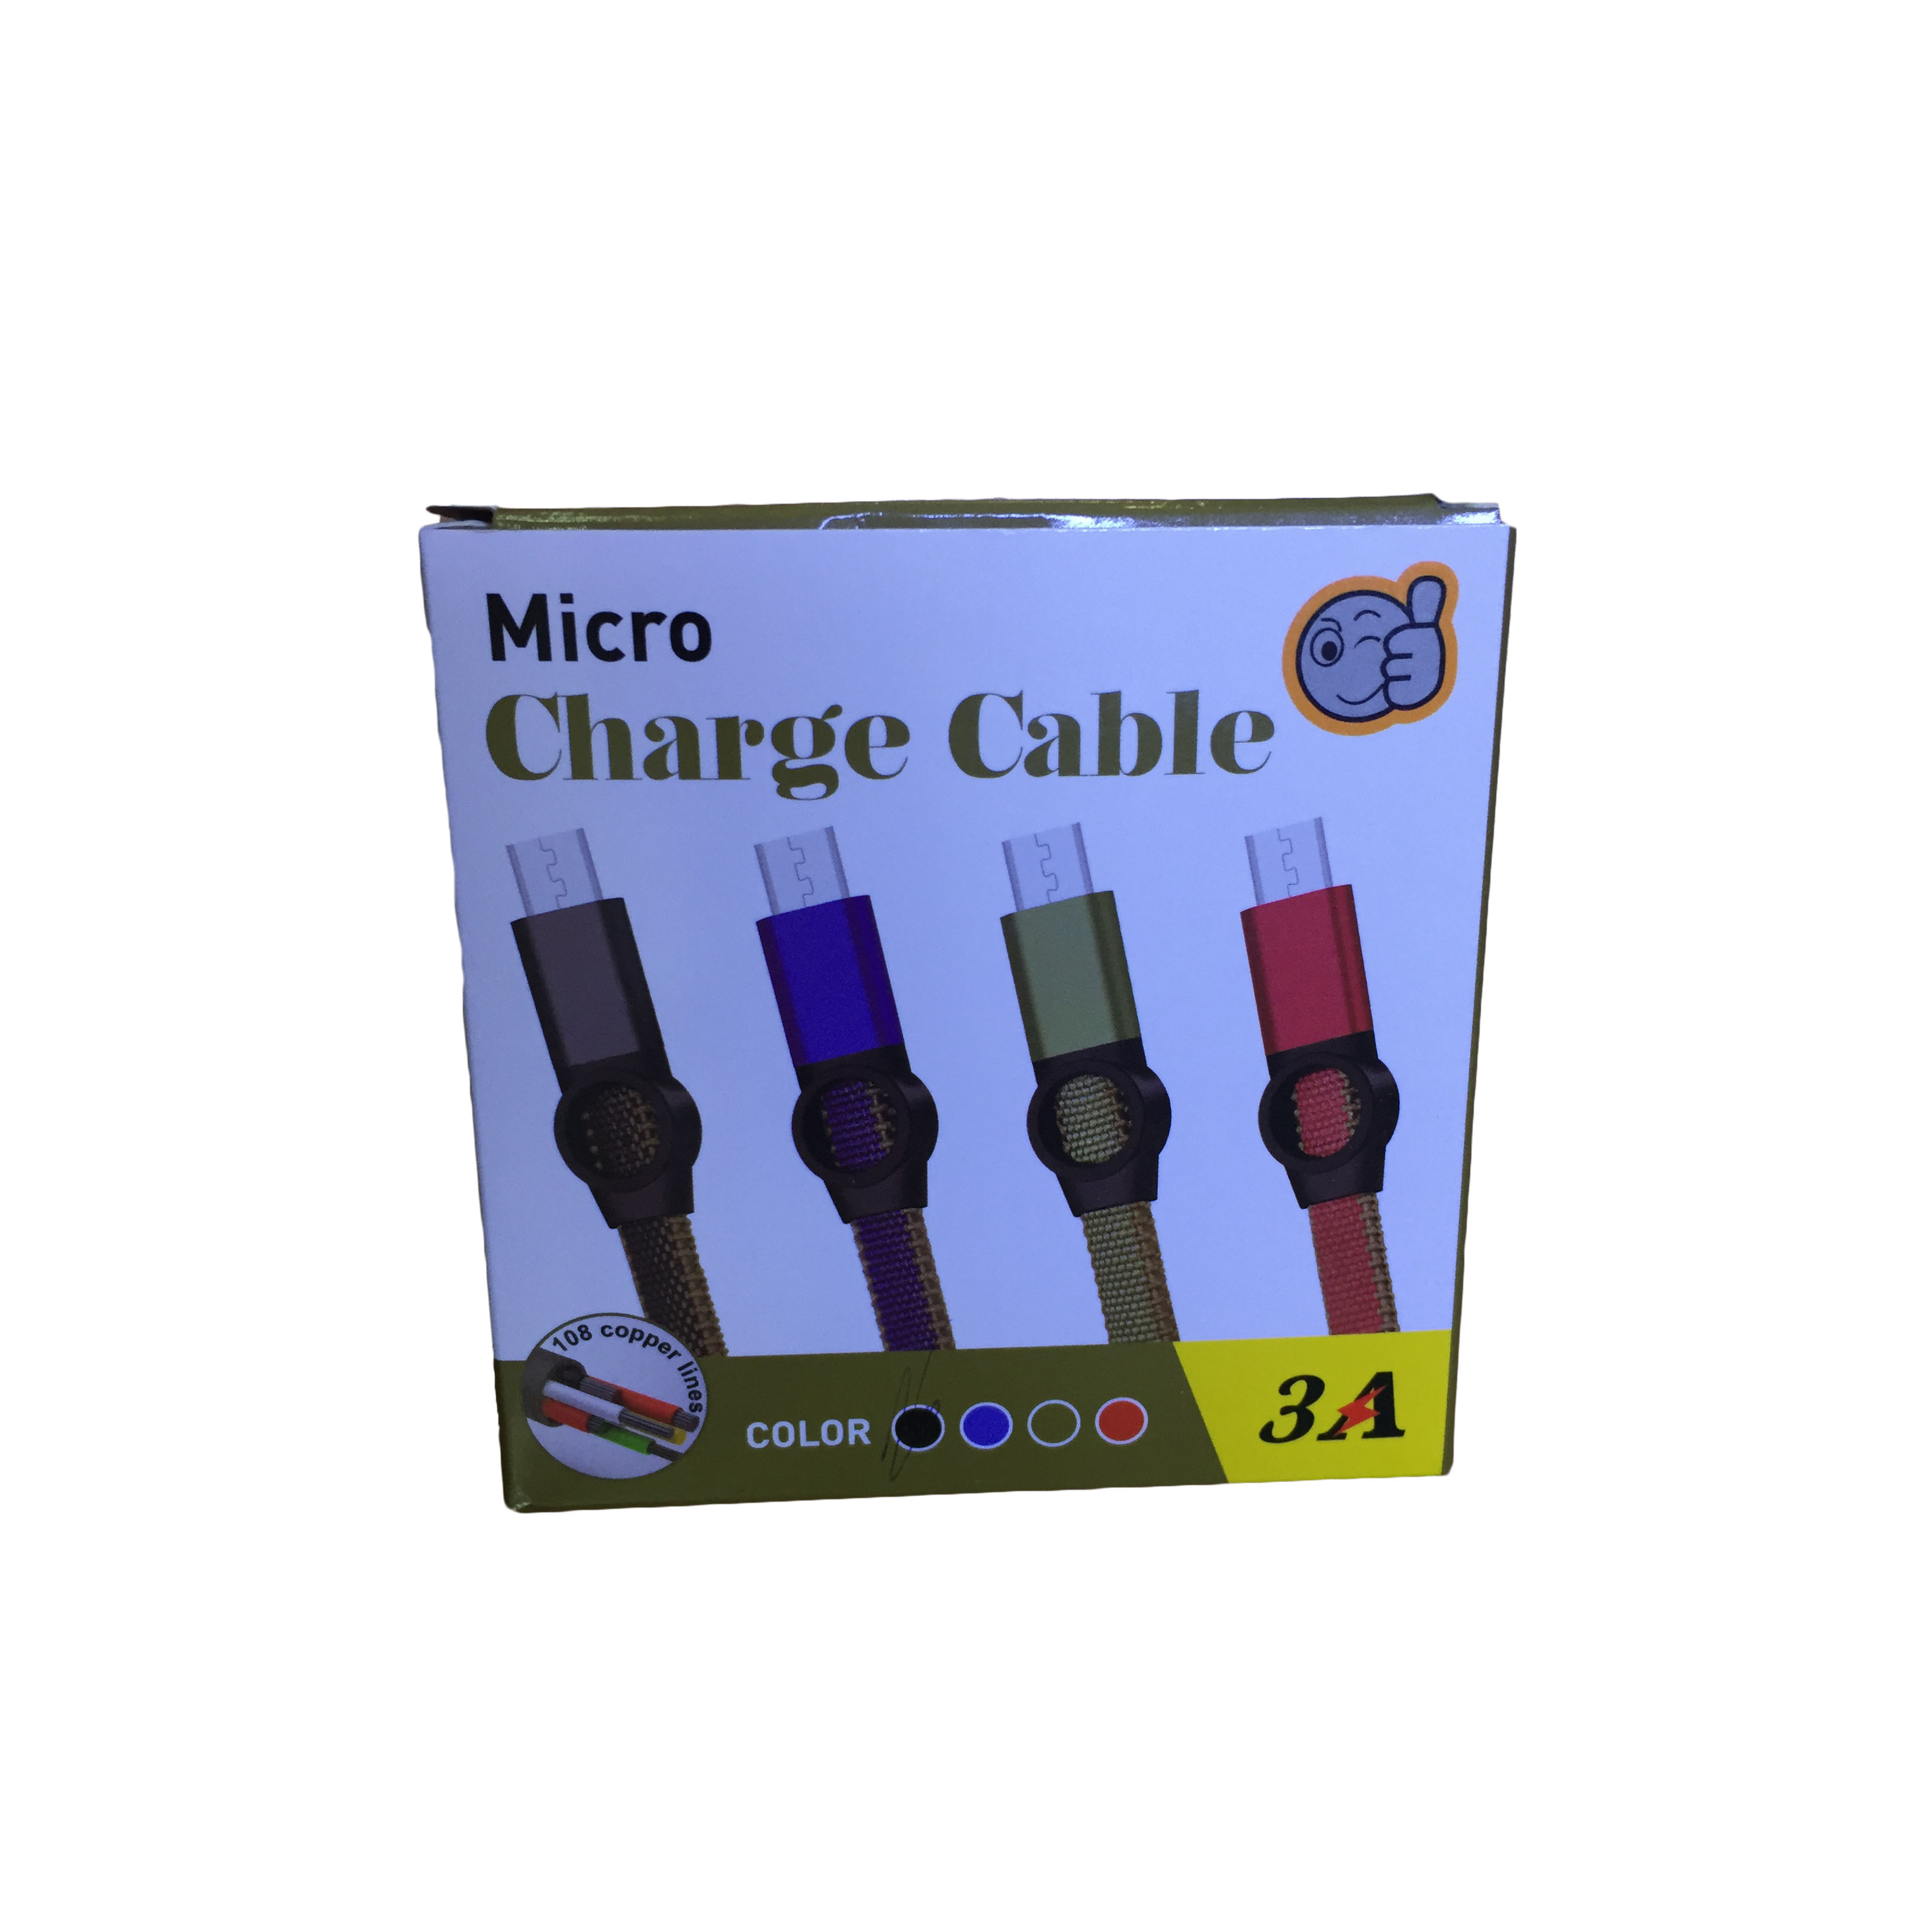 CABLE MICRO USB DATA & CHARGE FOR SMARTPHONE 3.0A A919 قماش جوده عاليه ,Other Smartphone Acc